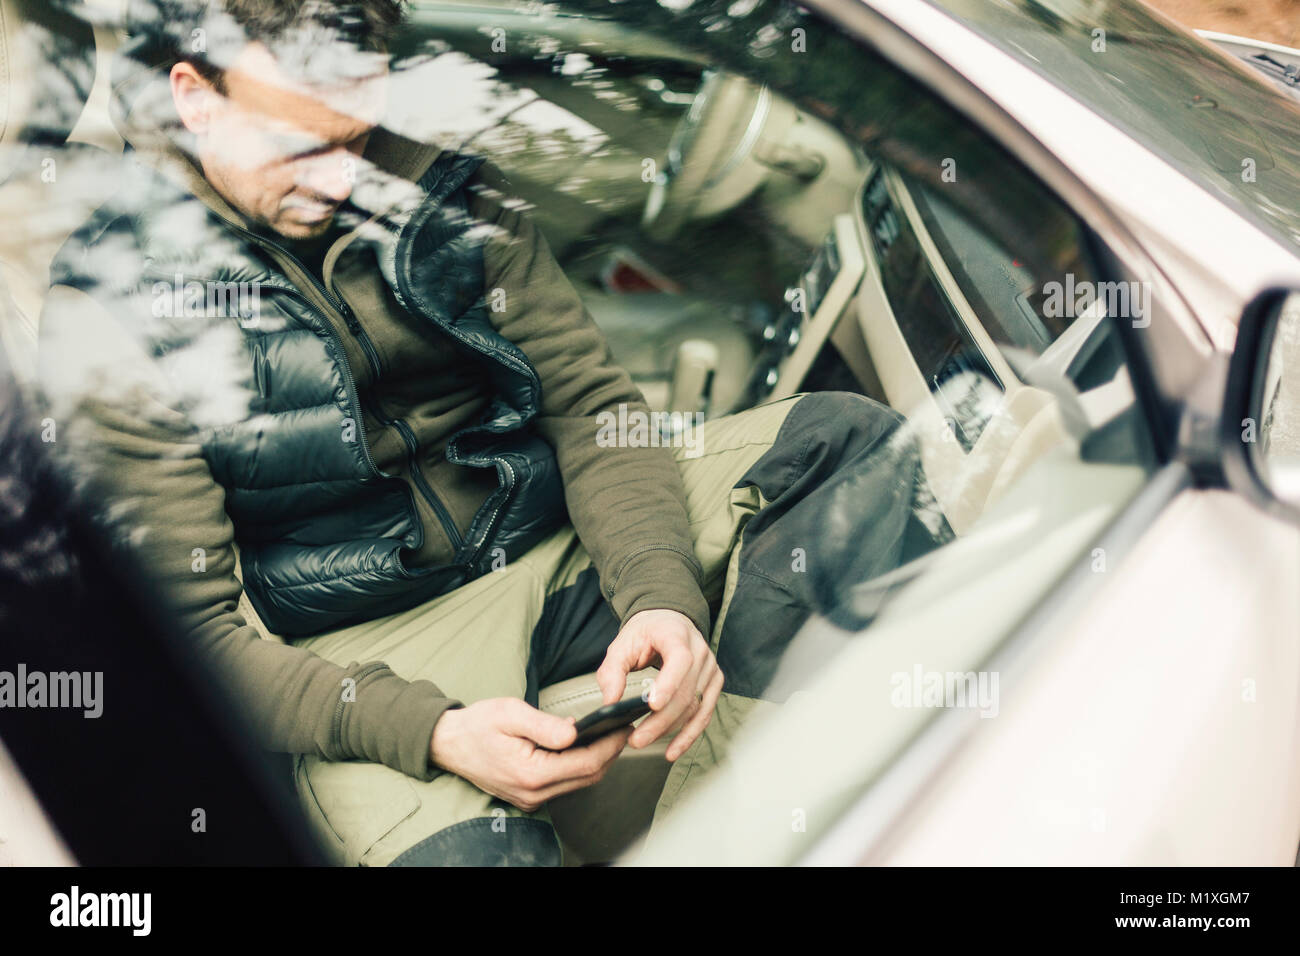 Man on smart phone behind car window in Sweden - Stock Image